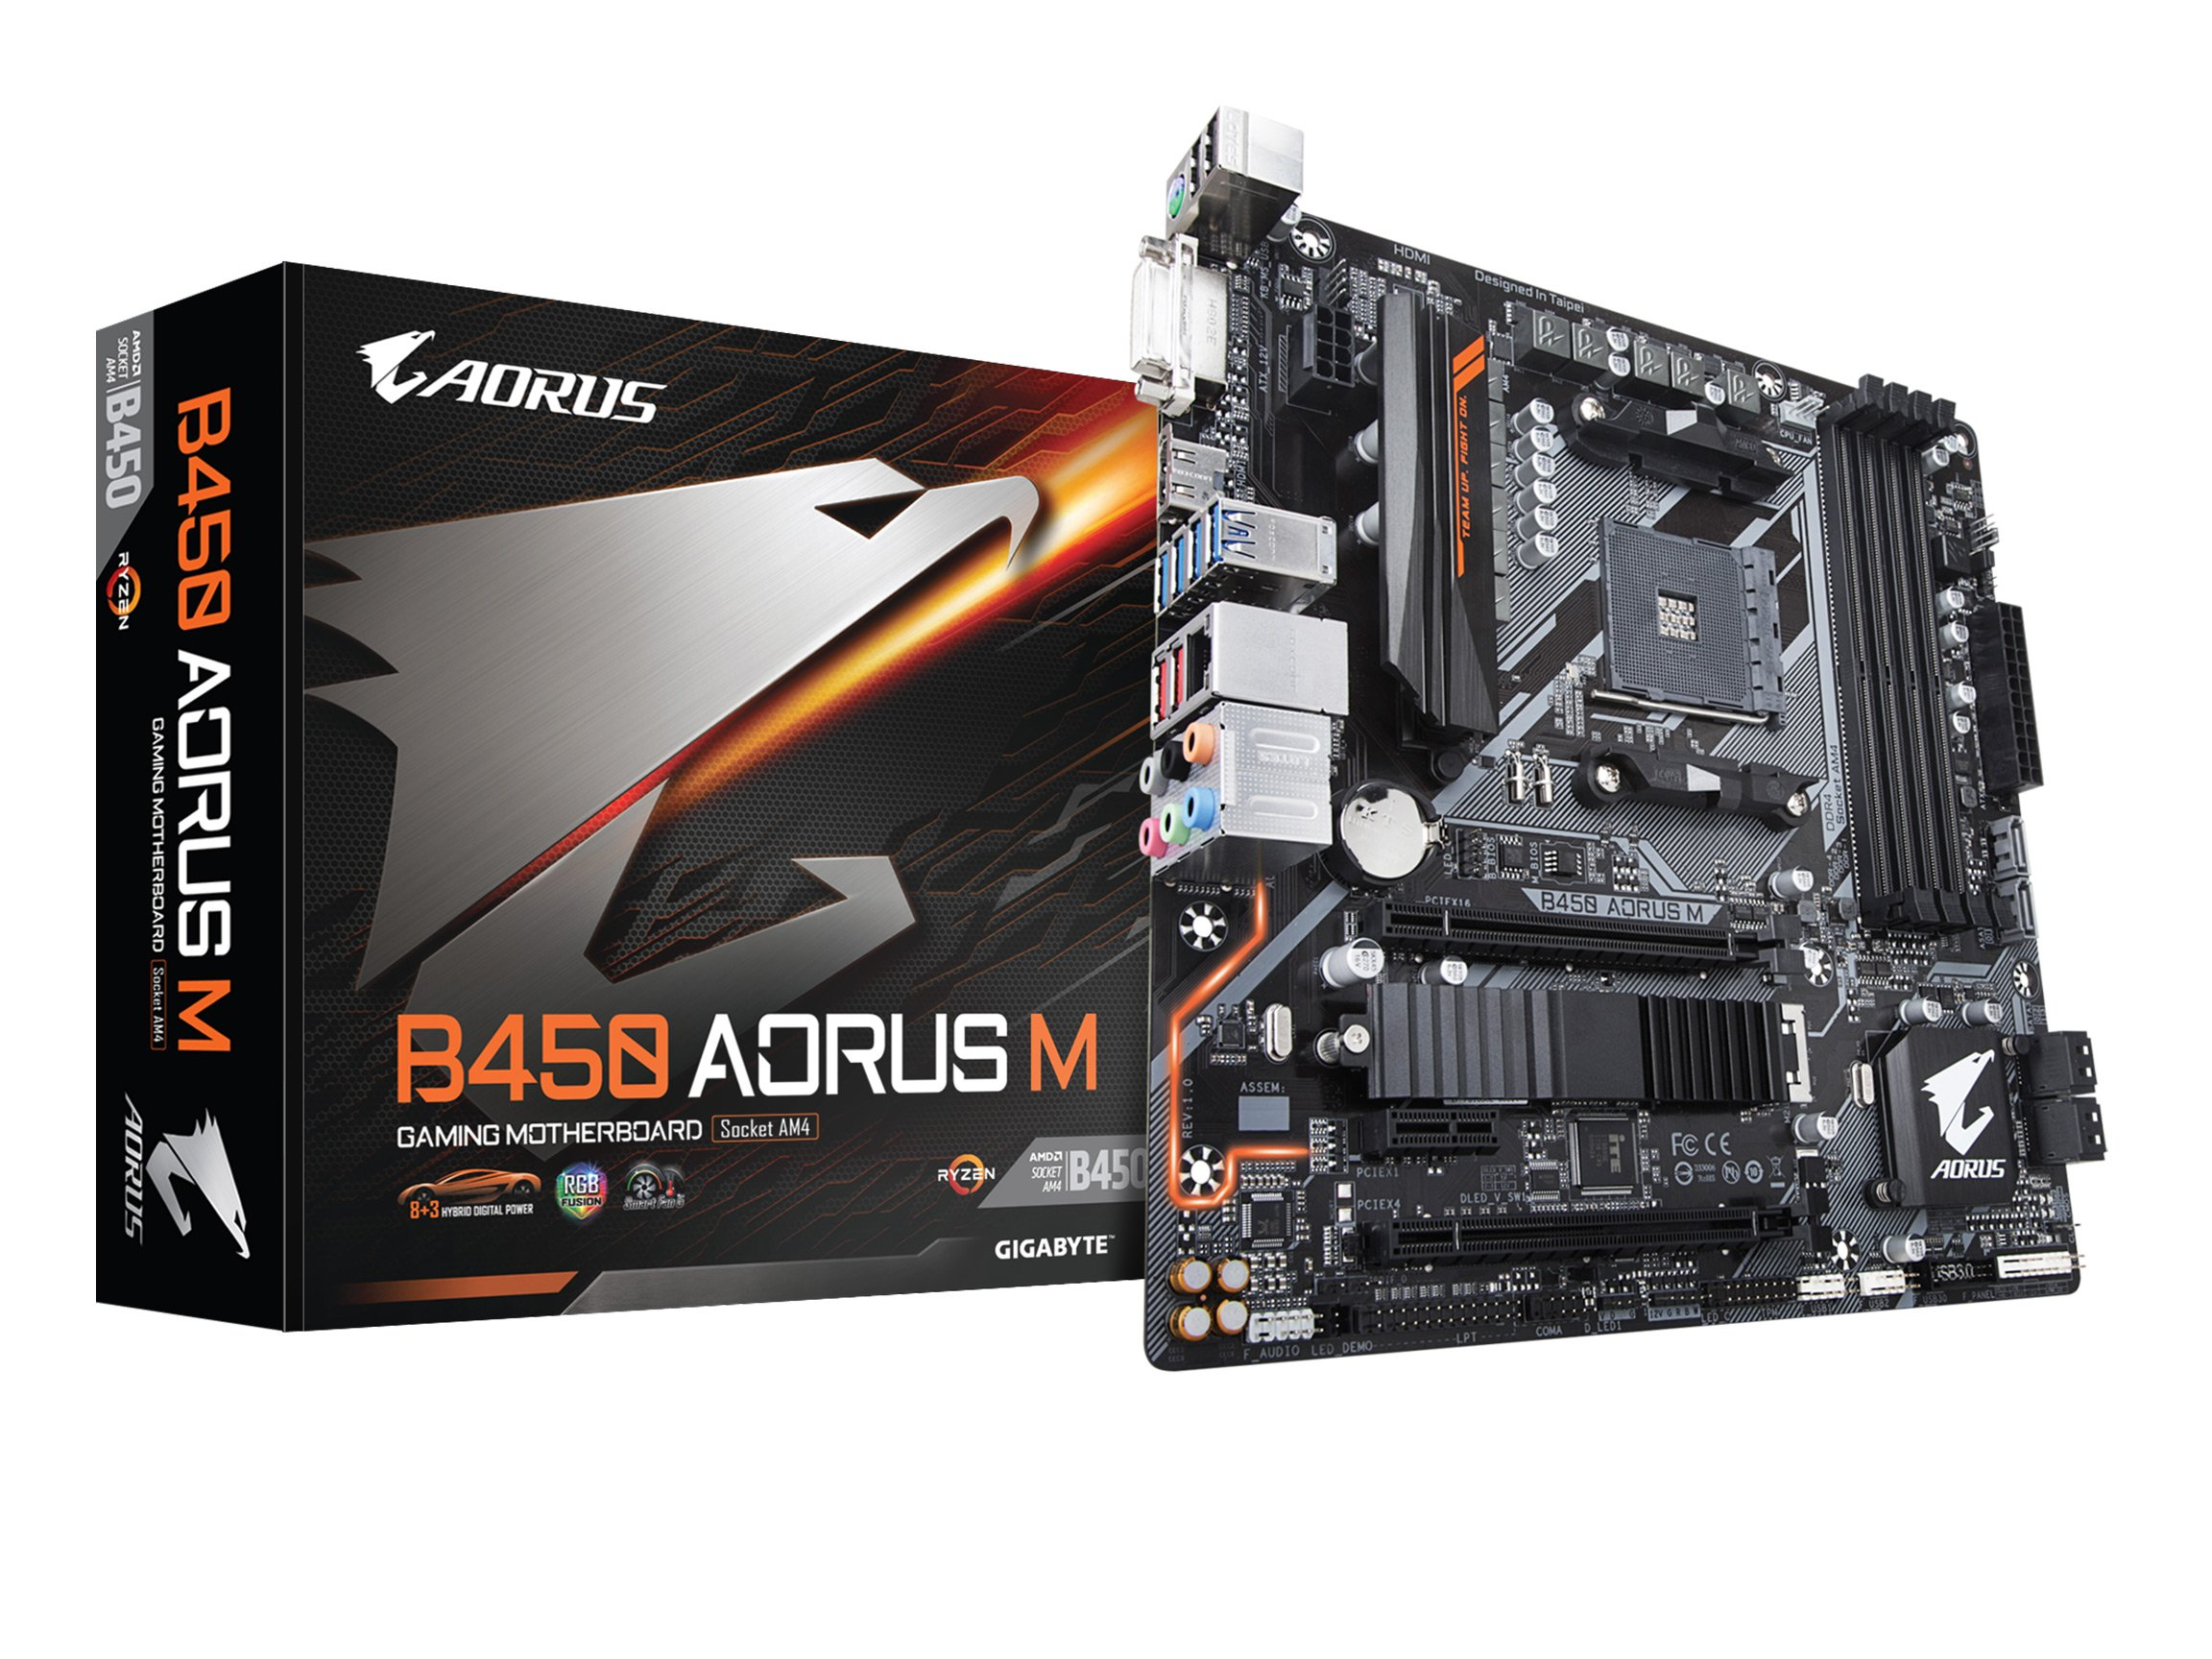 Gigabyte B450 Aorus M (amd Ryzen Am4/m.2 Thermal Guard/hd...